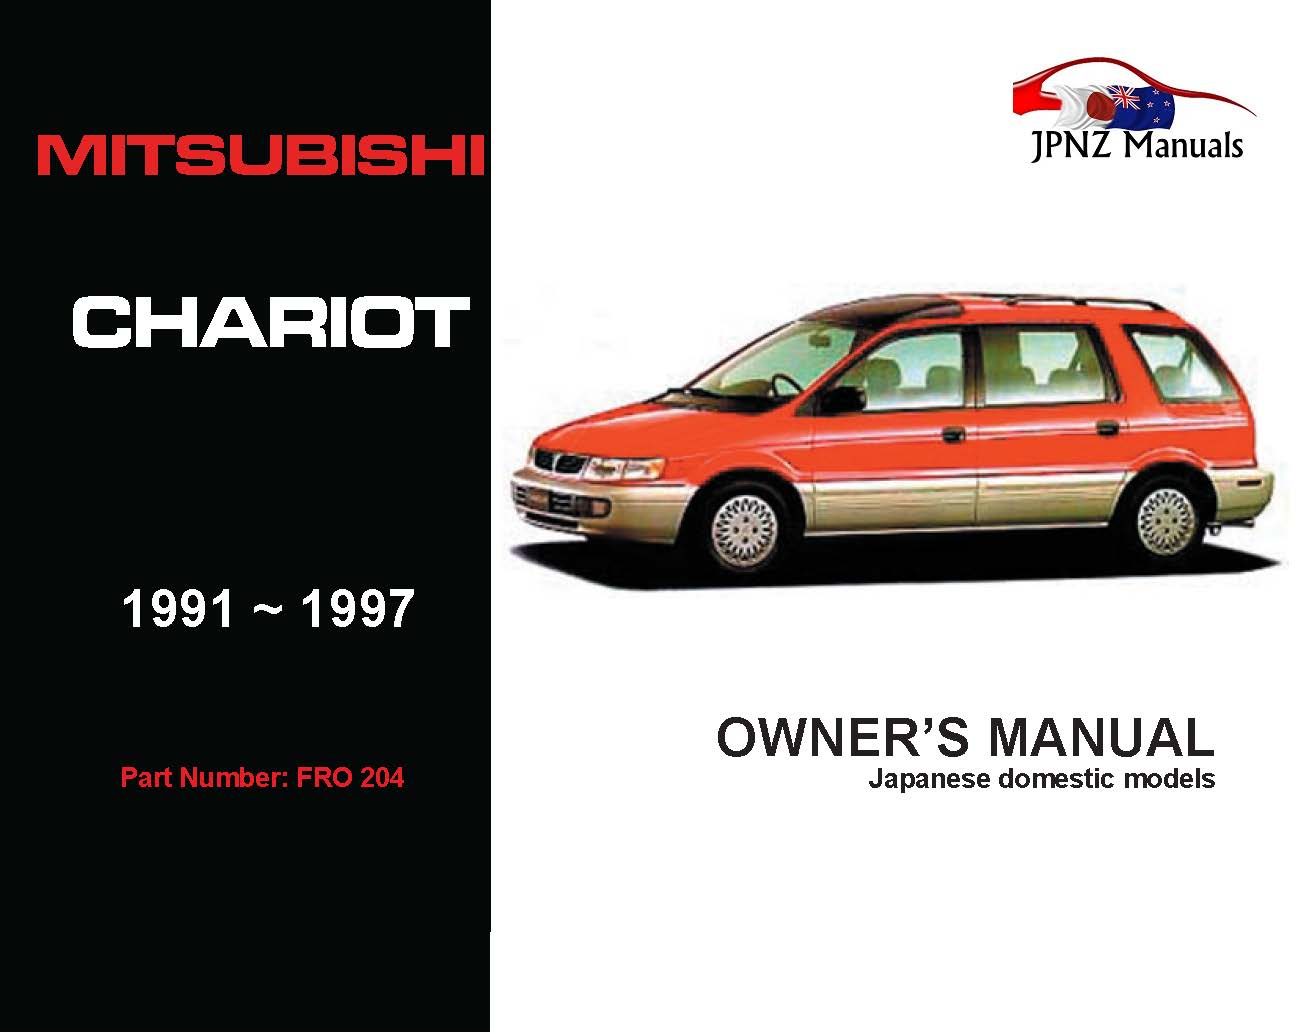 Mitsubishi - Chariot Owner's User Manual In English | 1991 - 1997